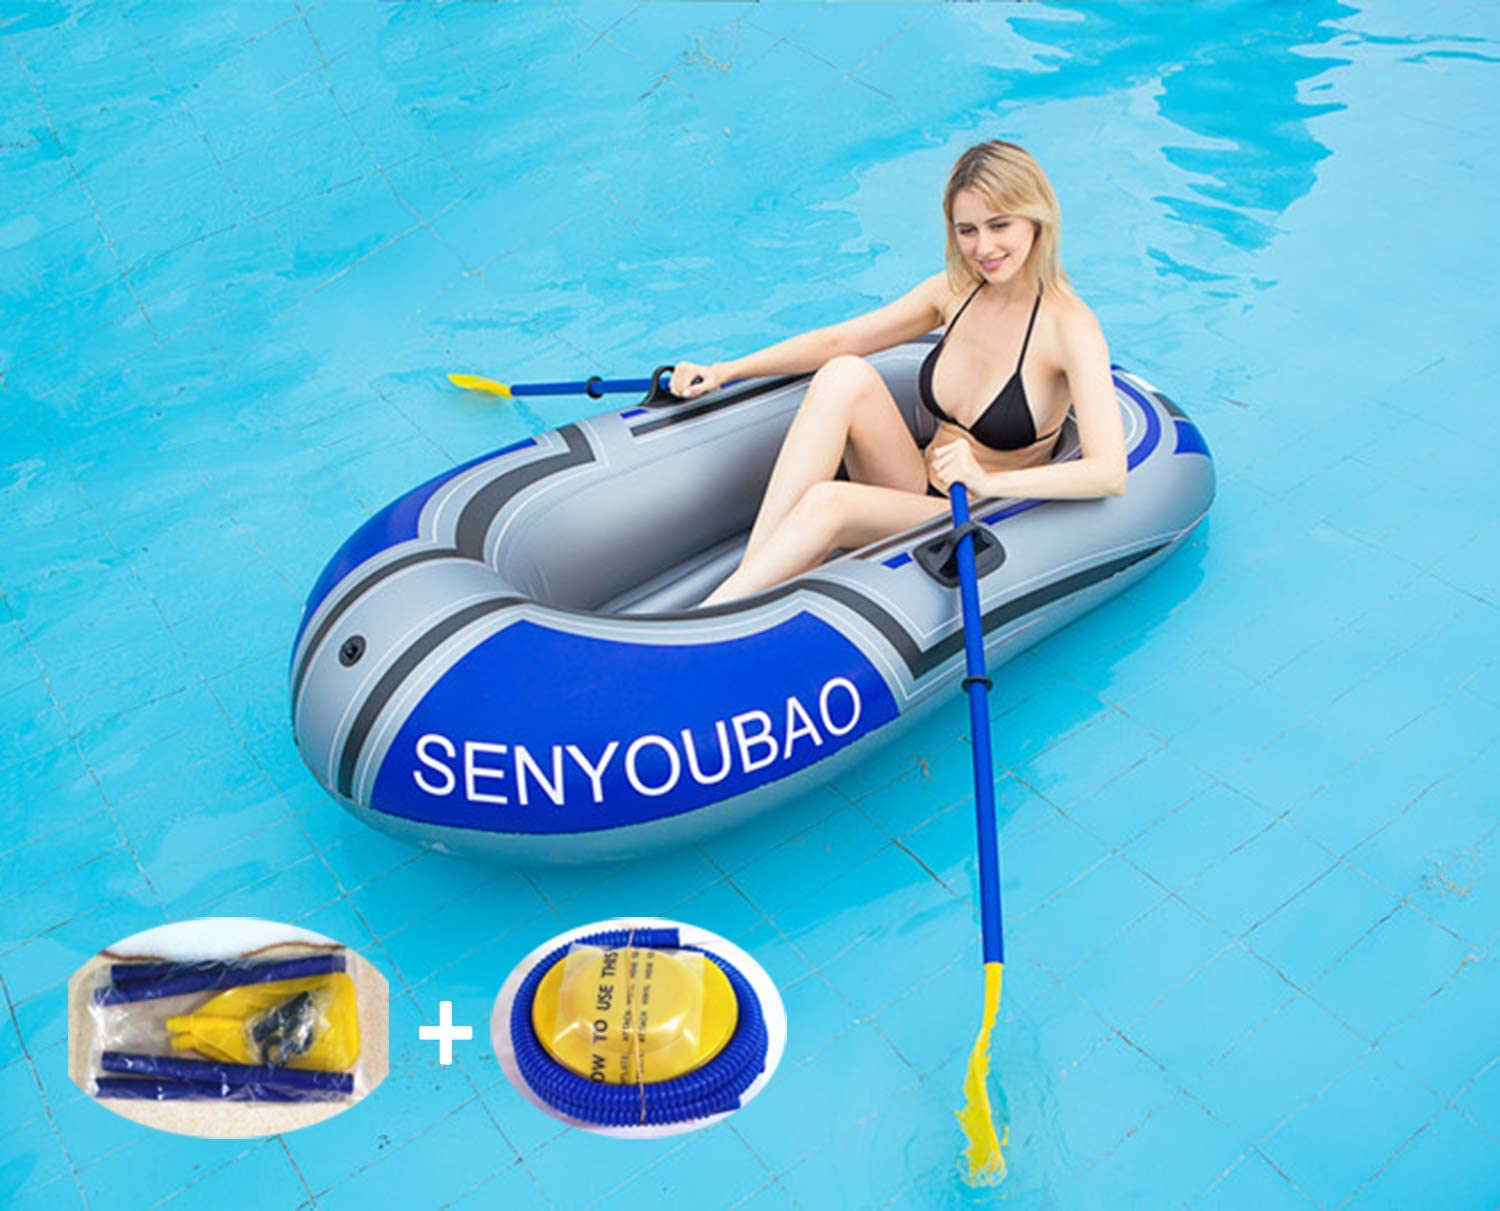 River Fishing Boat for 2 Adults and 1 Child Max Load 90 kg PVC Inflatable Kayak Canoe for Outdoor Drifting Fishing Traveling Inflatable Rubber Boat